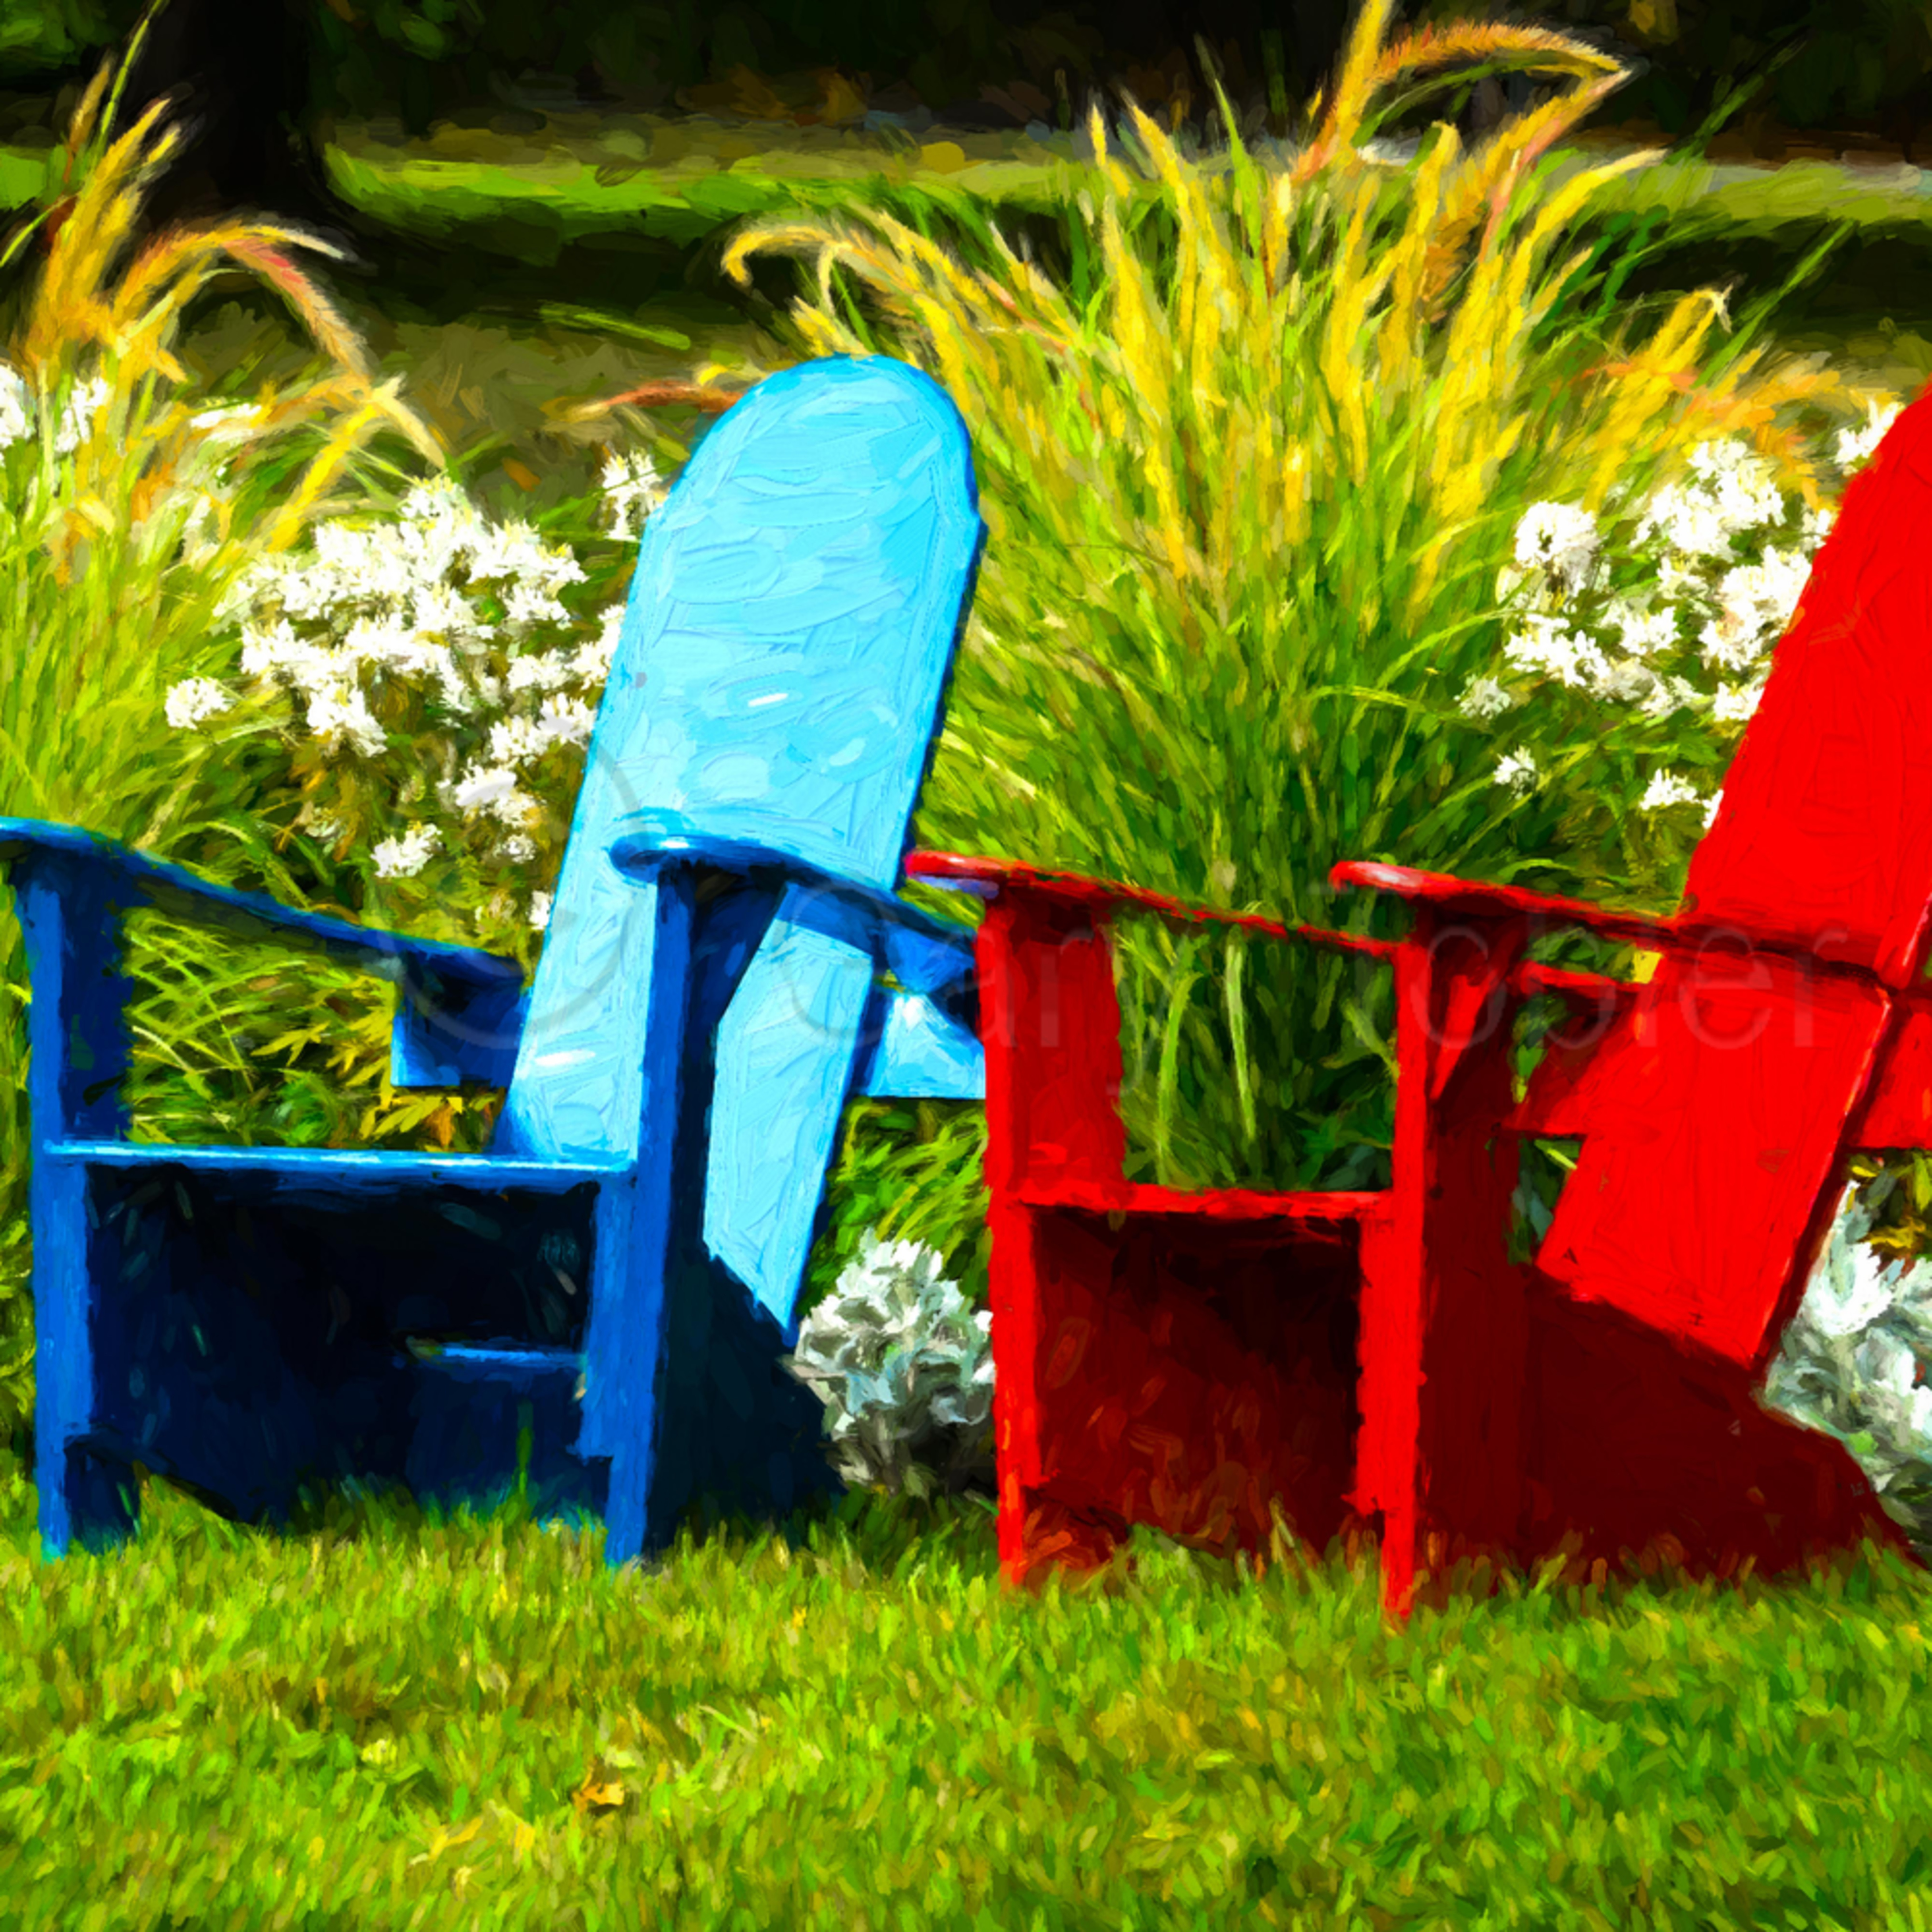 Basinharborbluered chairs usmmag